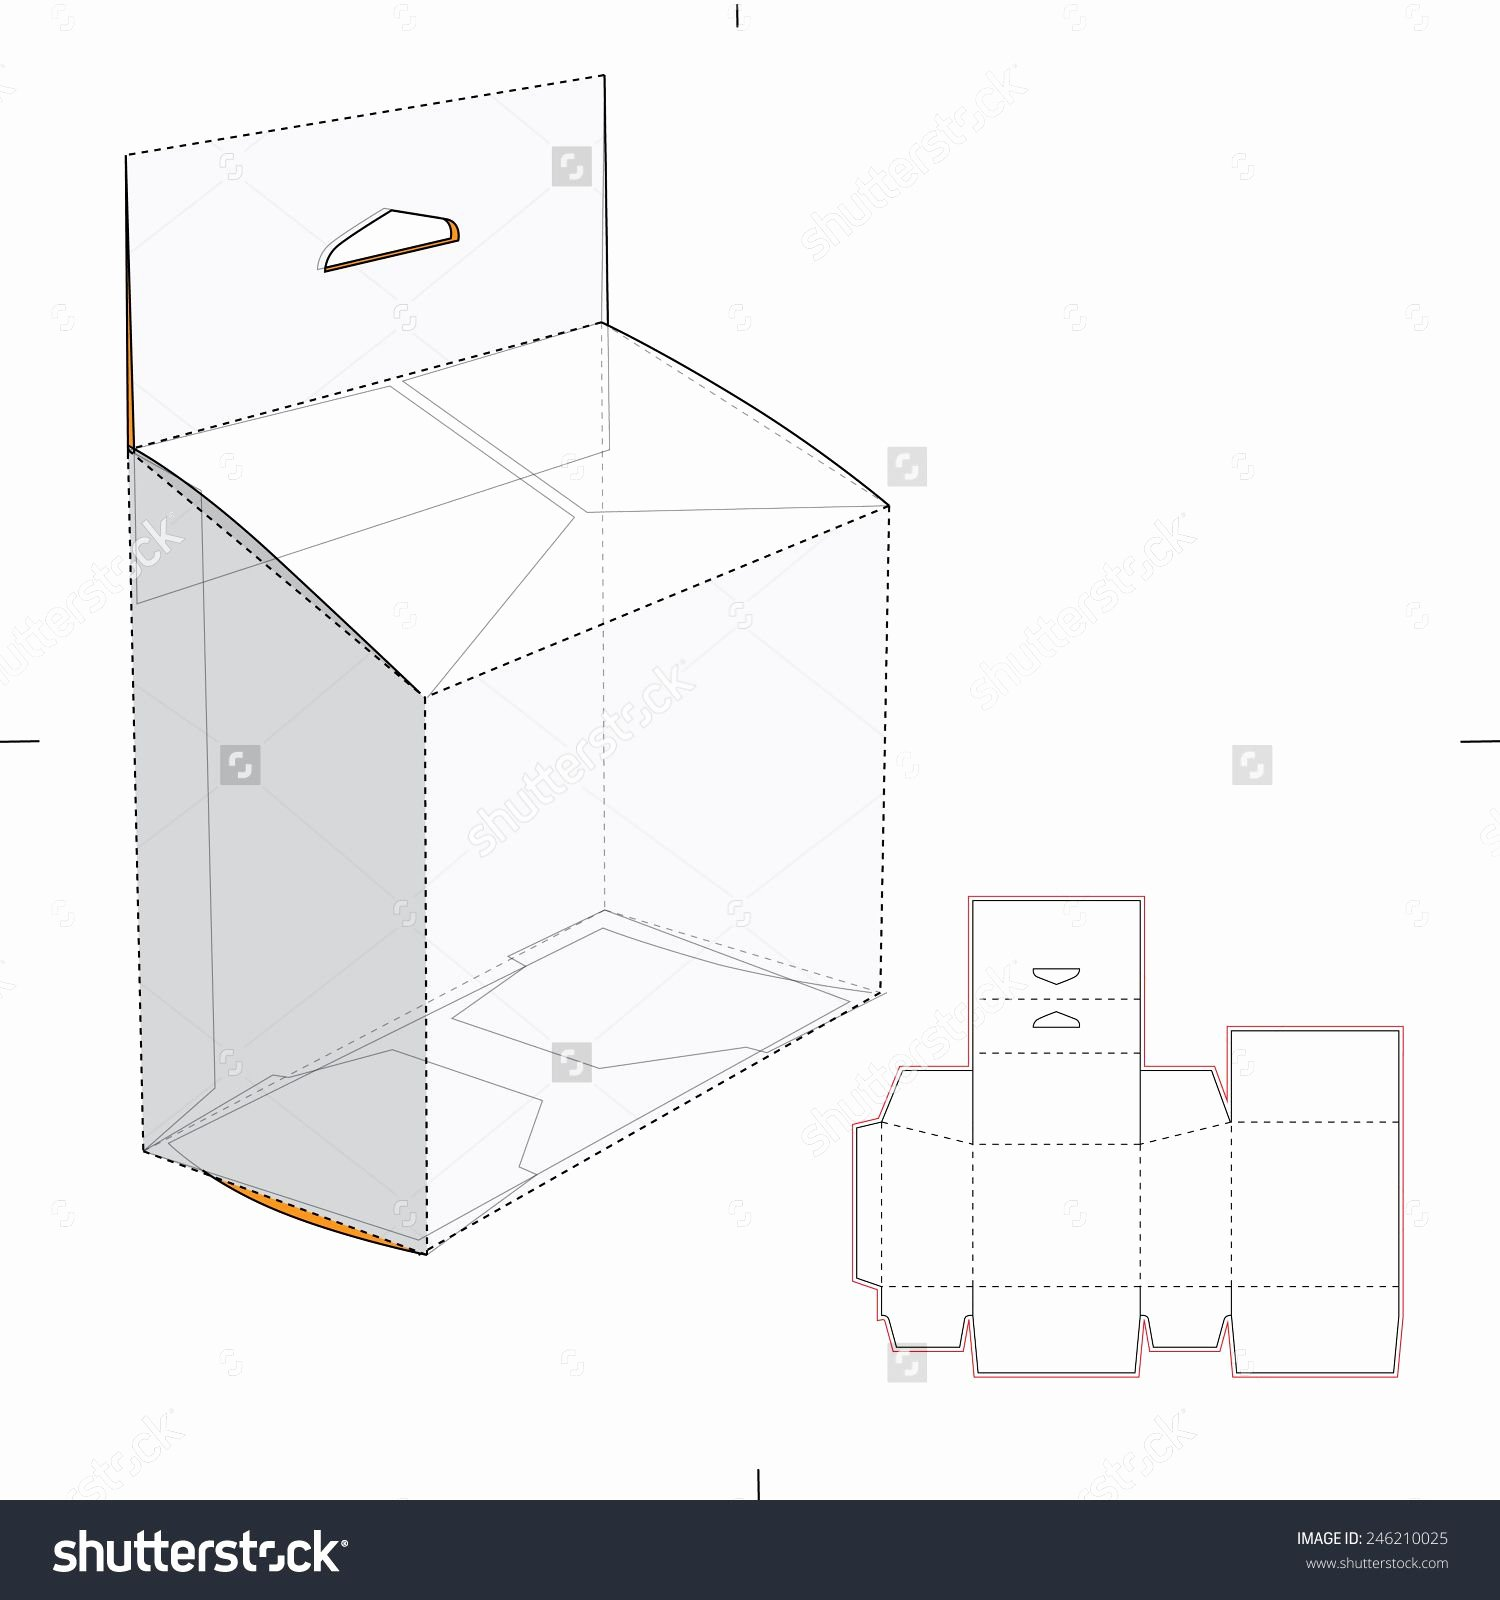 Die Cut Box Templates New Slanted Box with Hang Tag and Die Cut Template Stock Vector Illustration